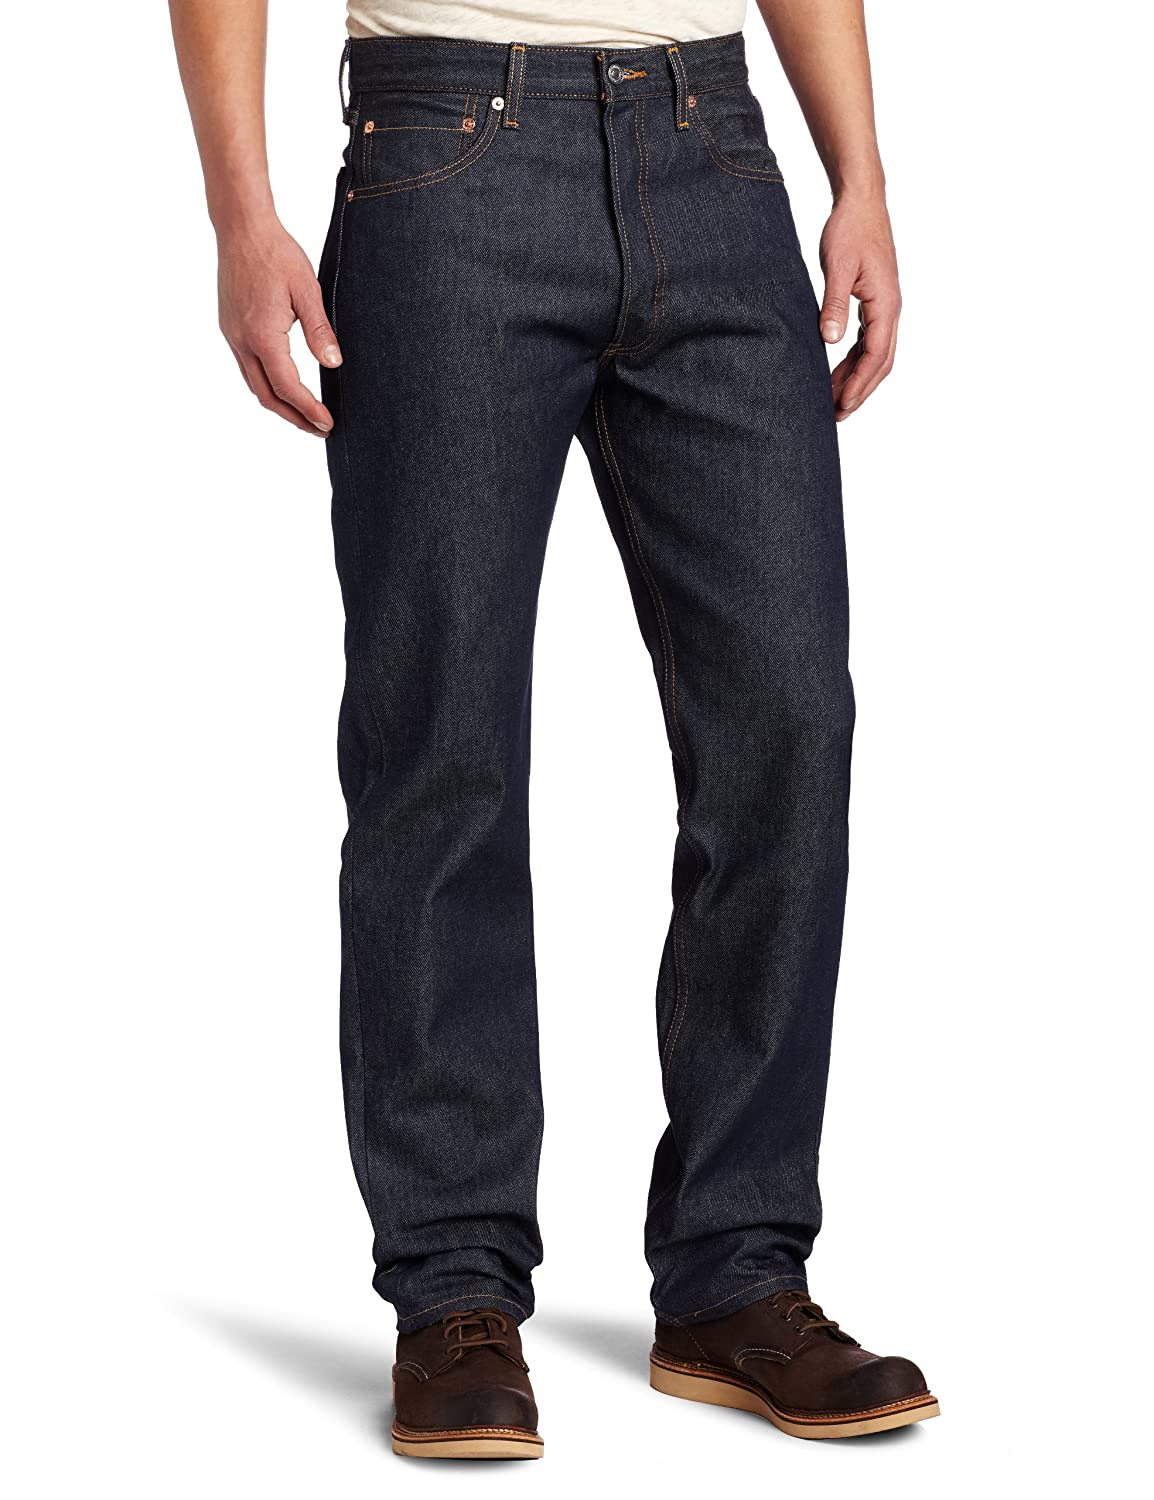 1ef69b6c779 Levi's Men's 501 Original Shrink-to-Fit Jeans at Amazon Men's Clothing store :